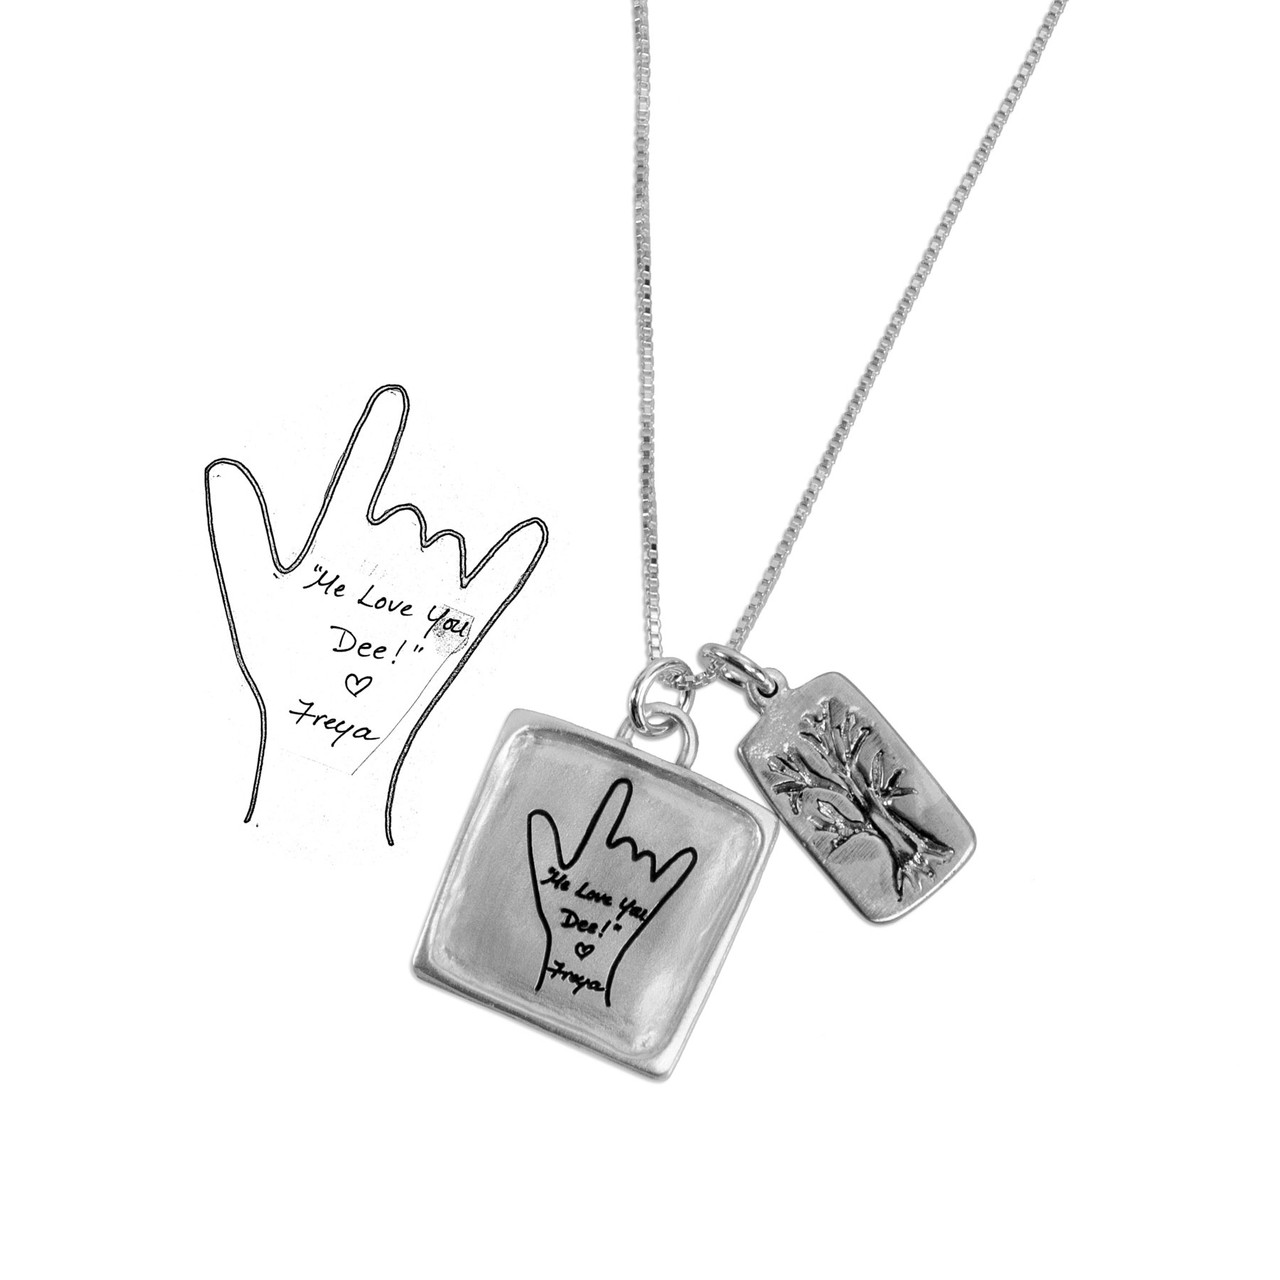 Silver Family Sculpted Raised Edge necklace with handwriting, shown on a model